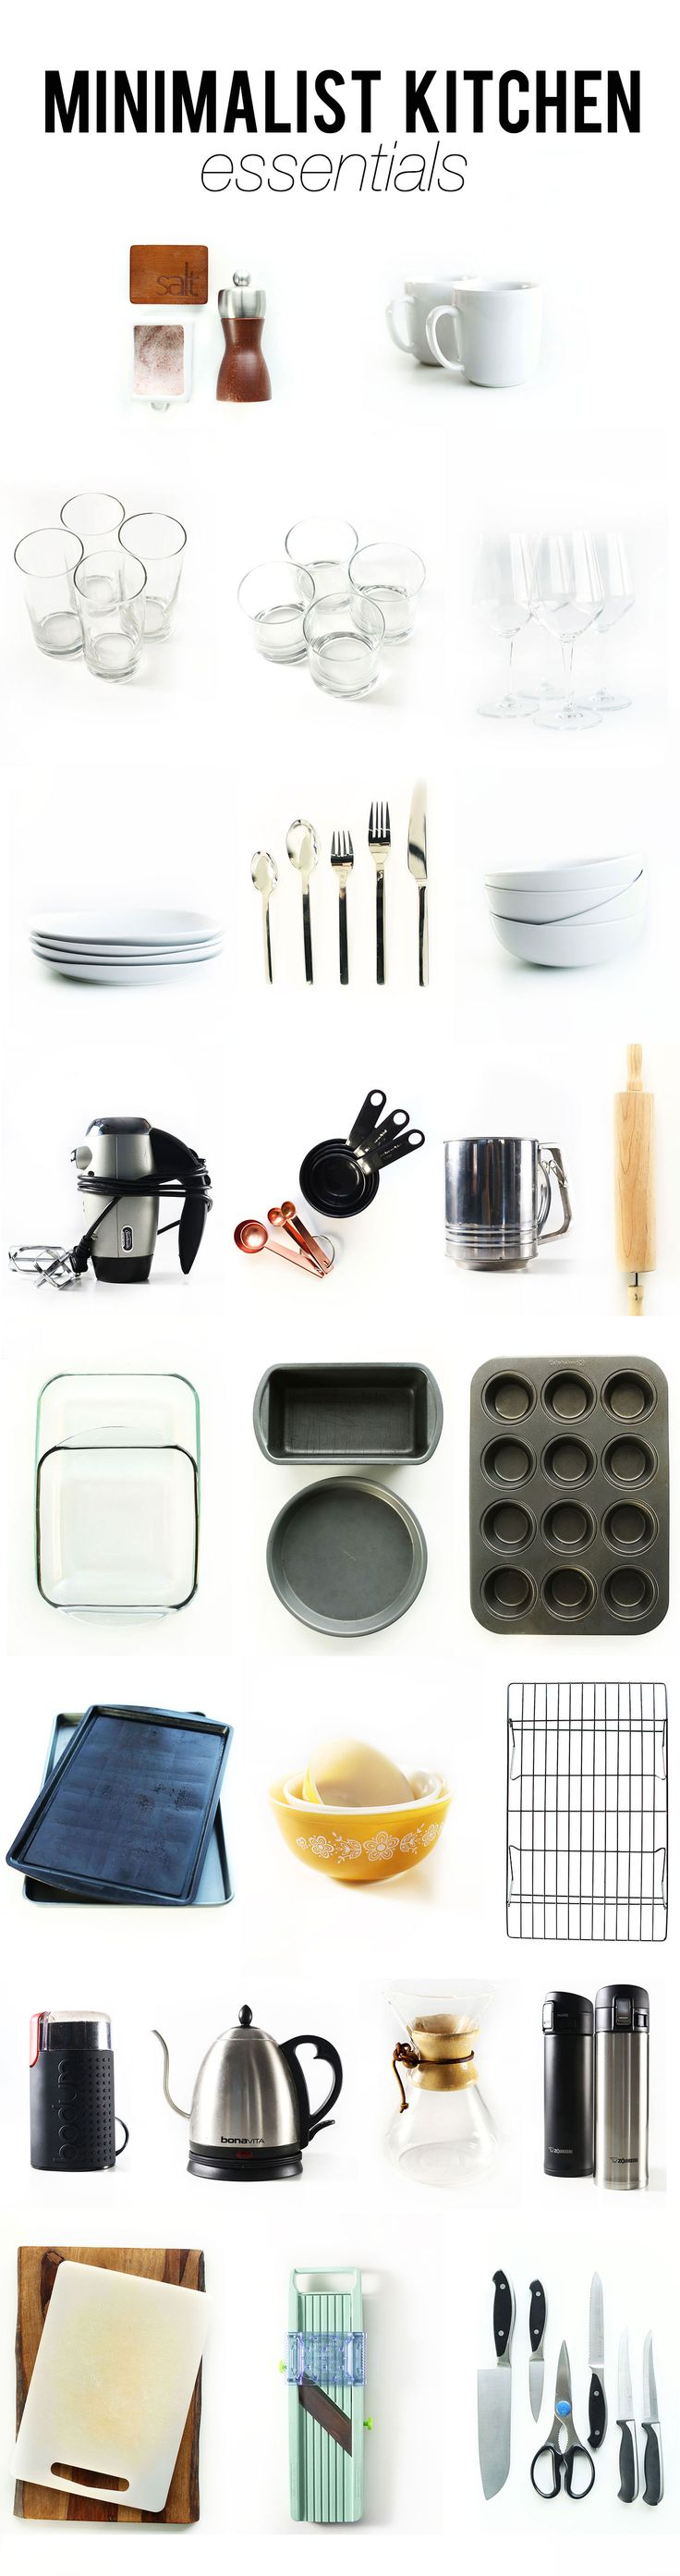 Our top-to-bottom Minimalist Kitchen Essentials | MinimalistBaker.com